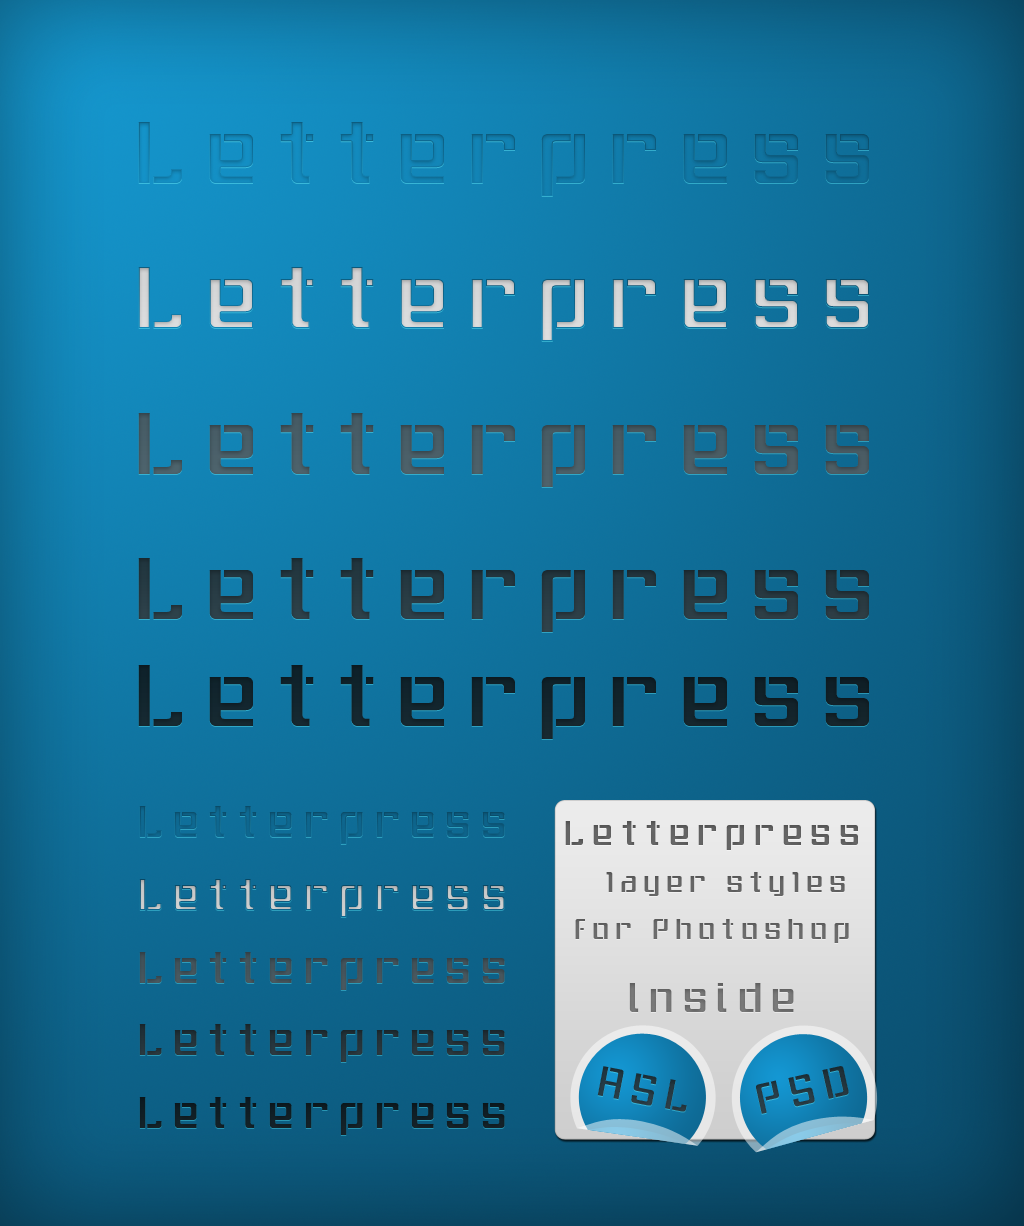 LetterpressLayerStylesbyIdered.png